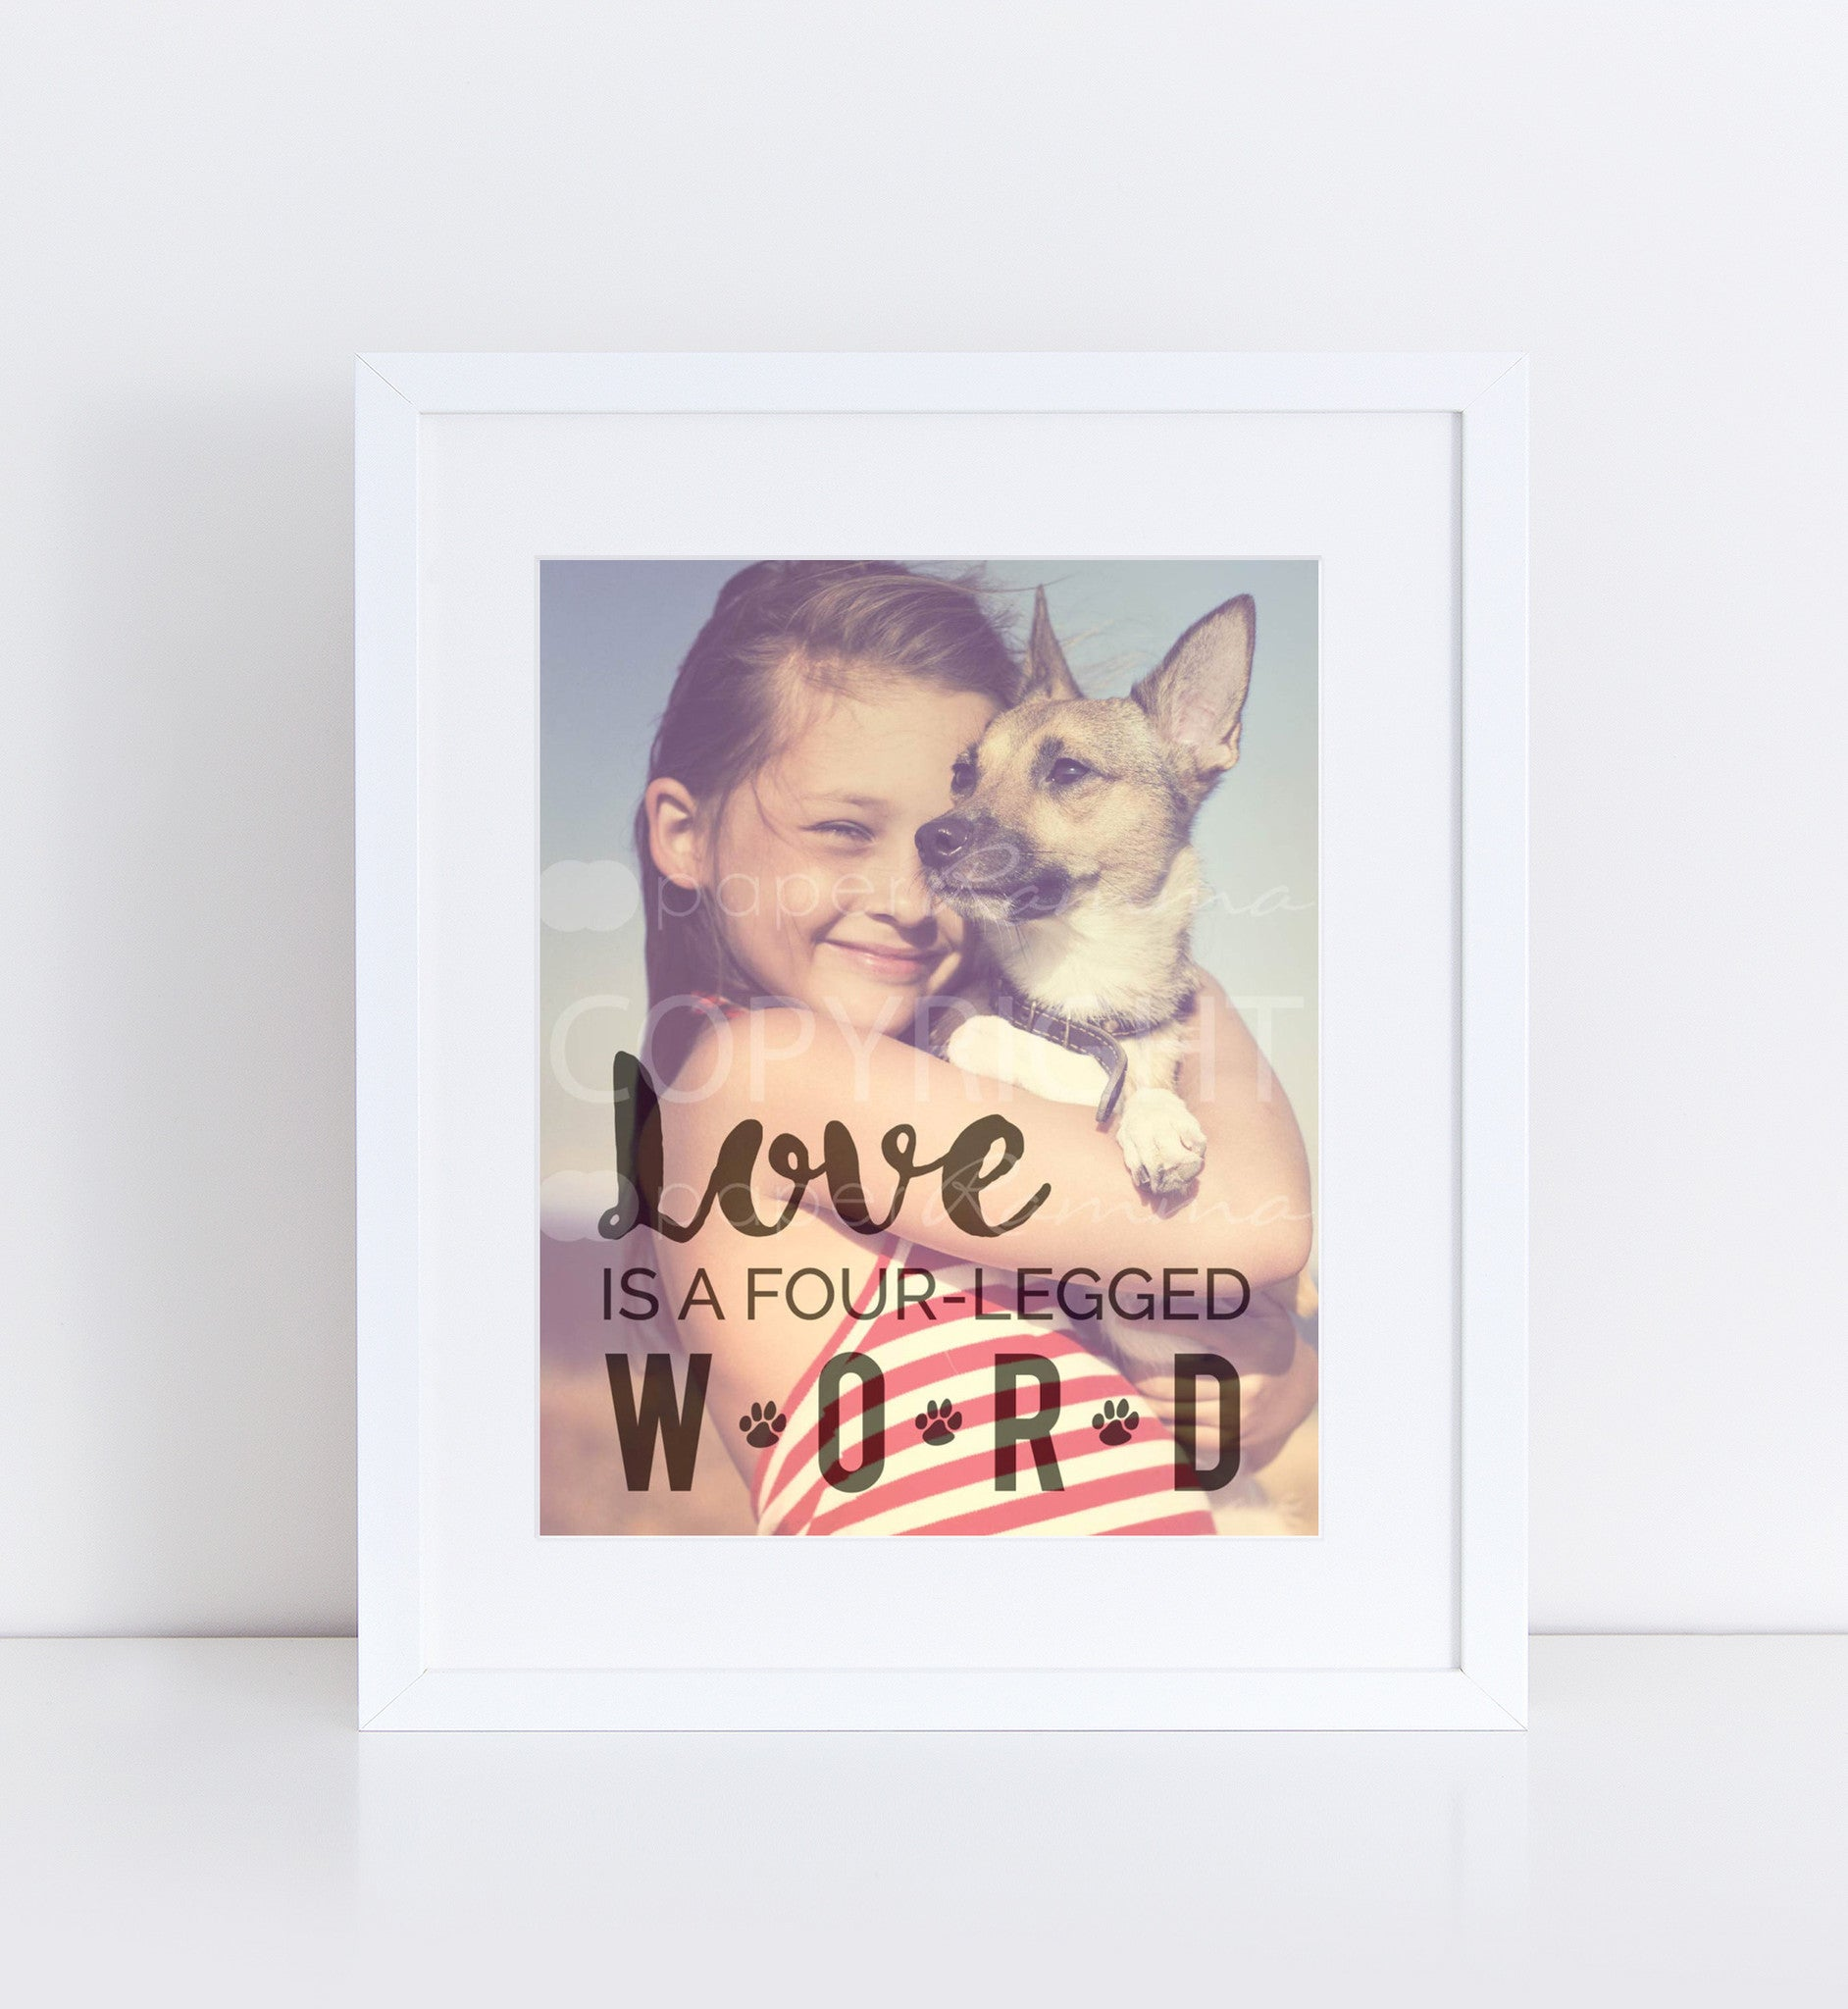 Four-Legged Word Personalized Photo Quote